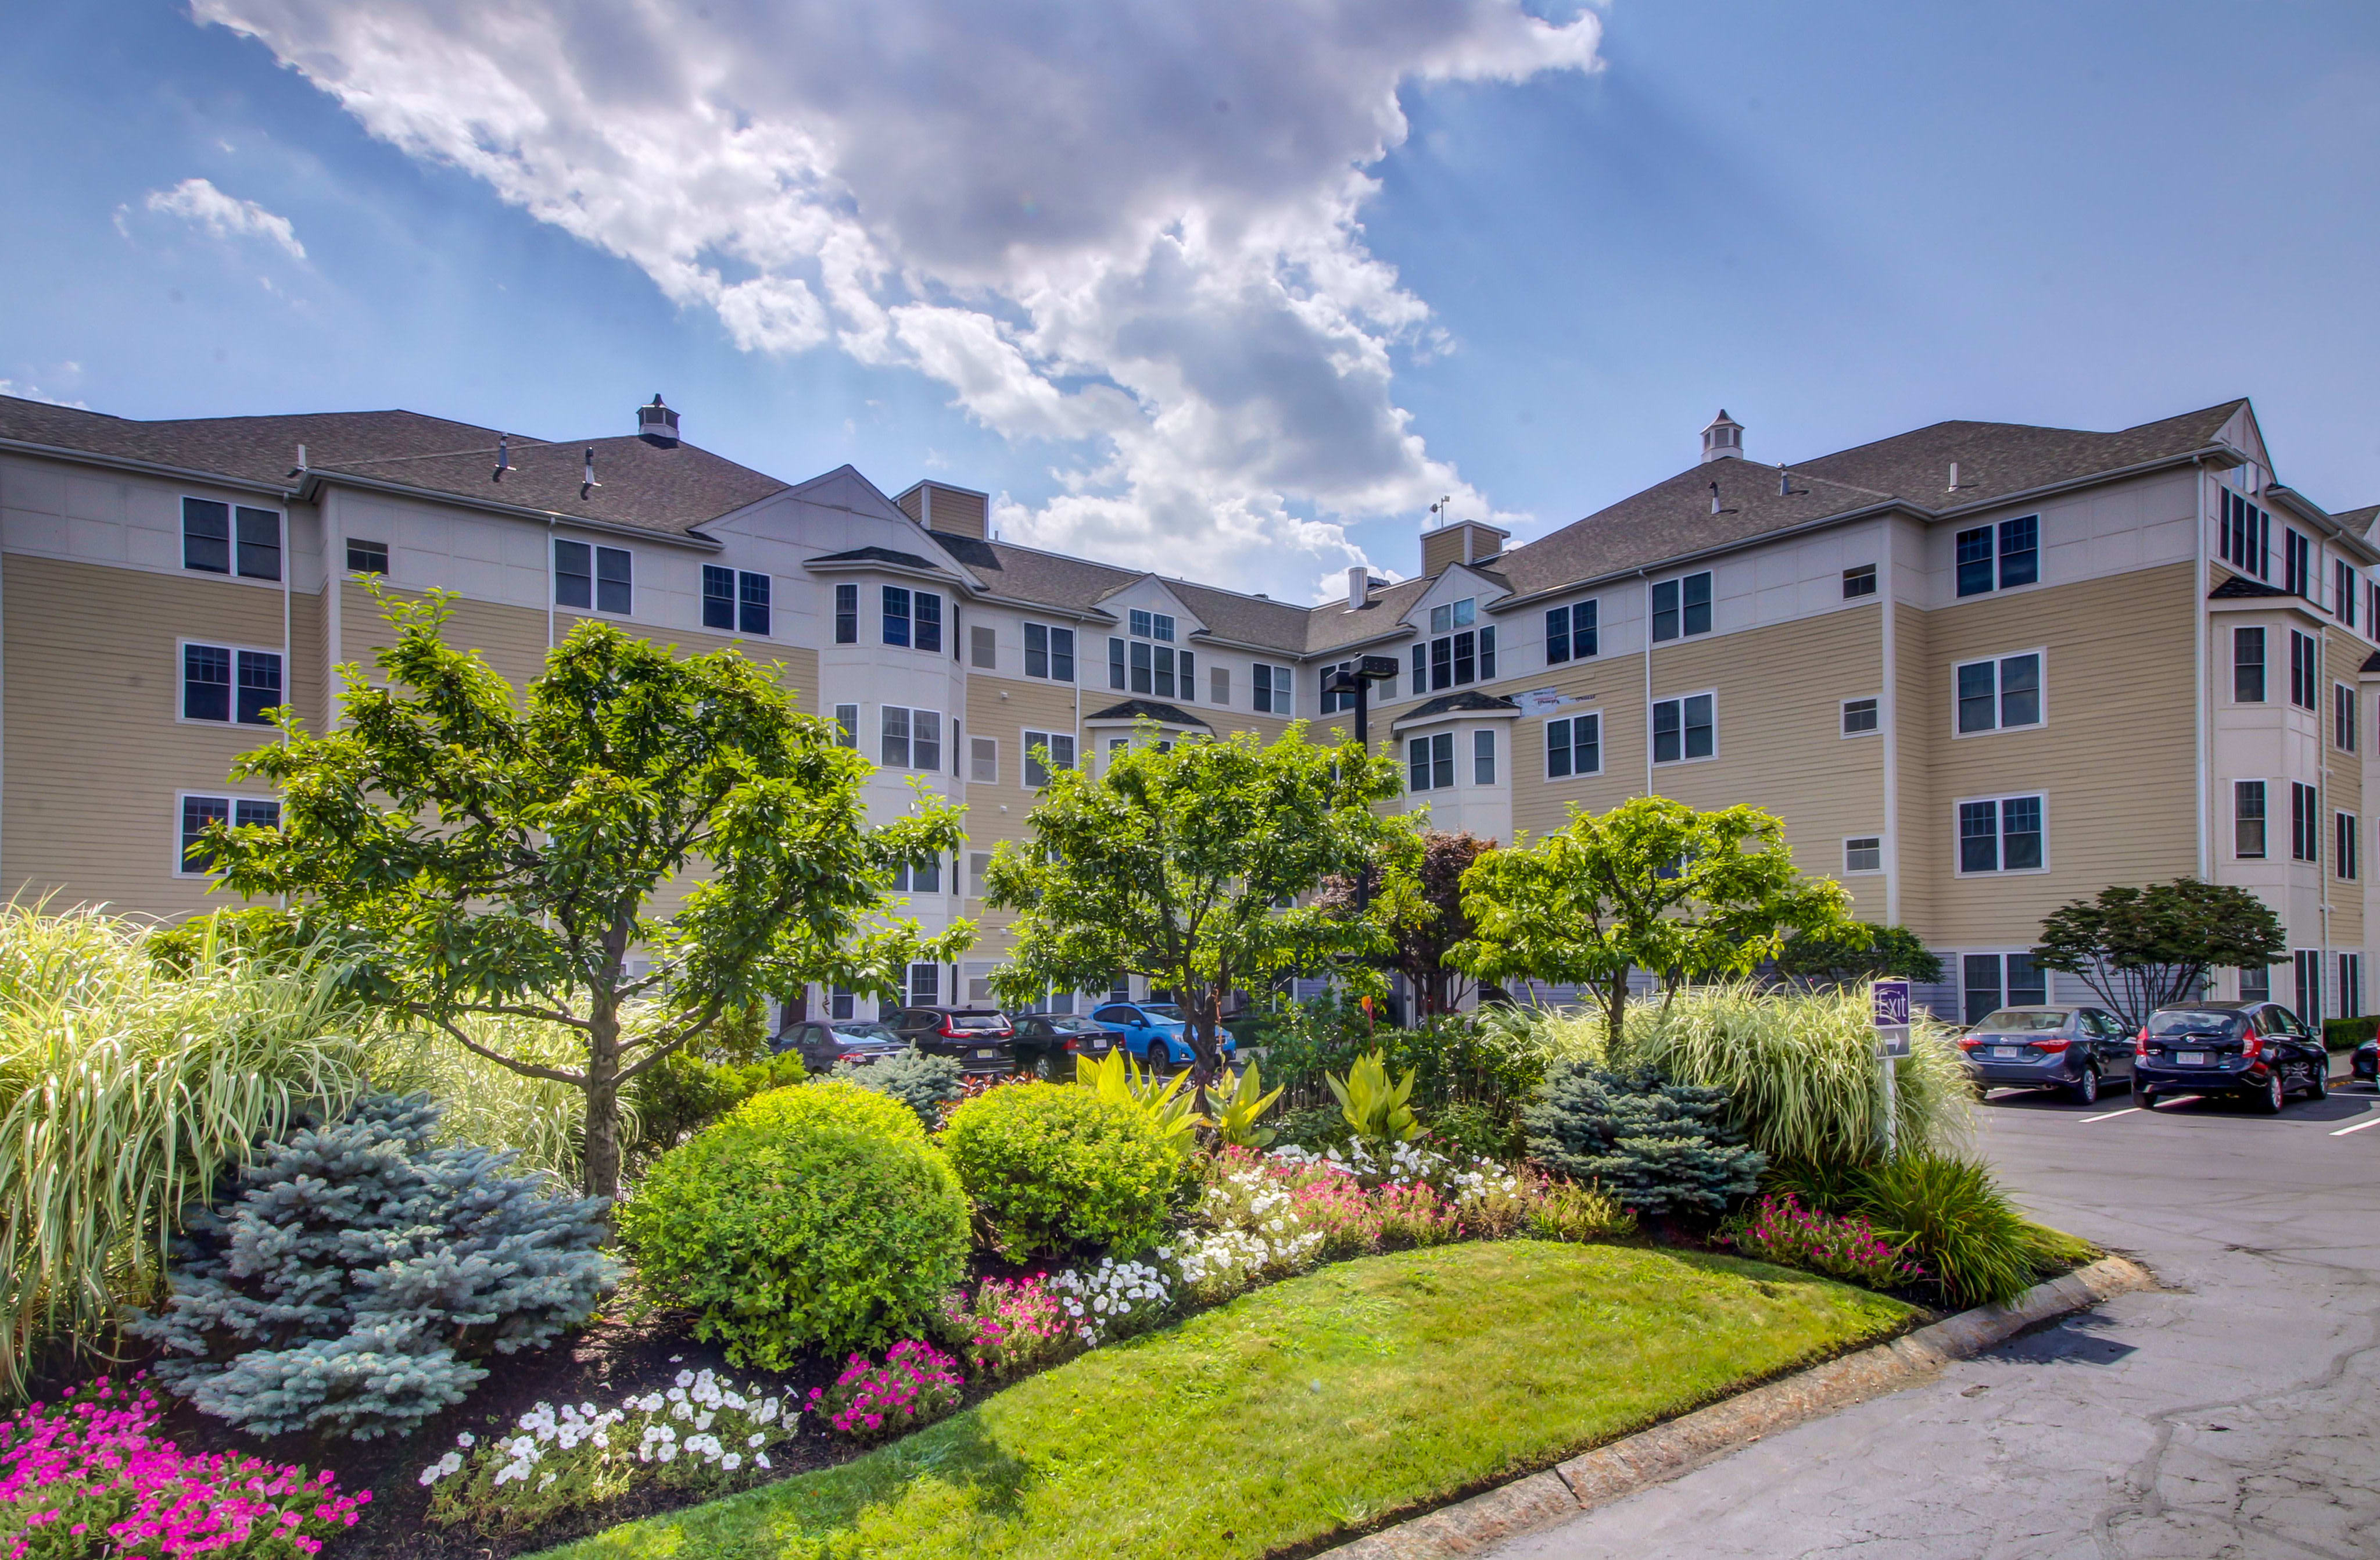 20 Best Apartments For Rent In Medford Ma With Pictures